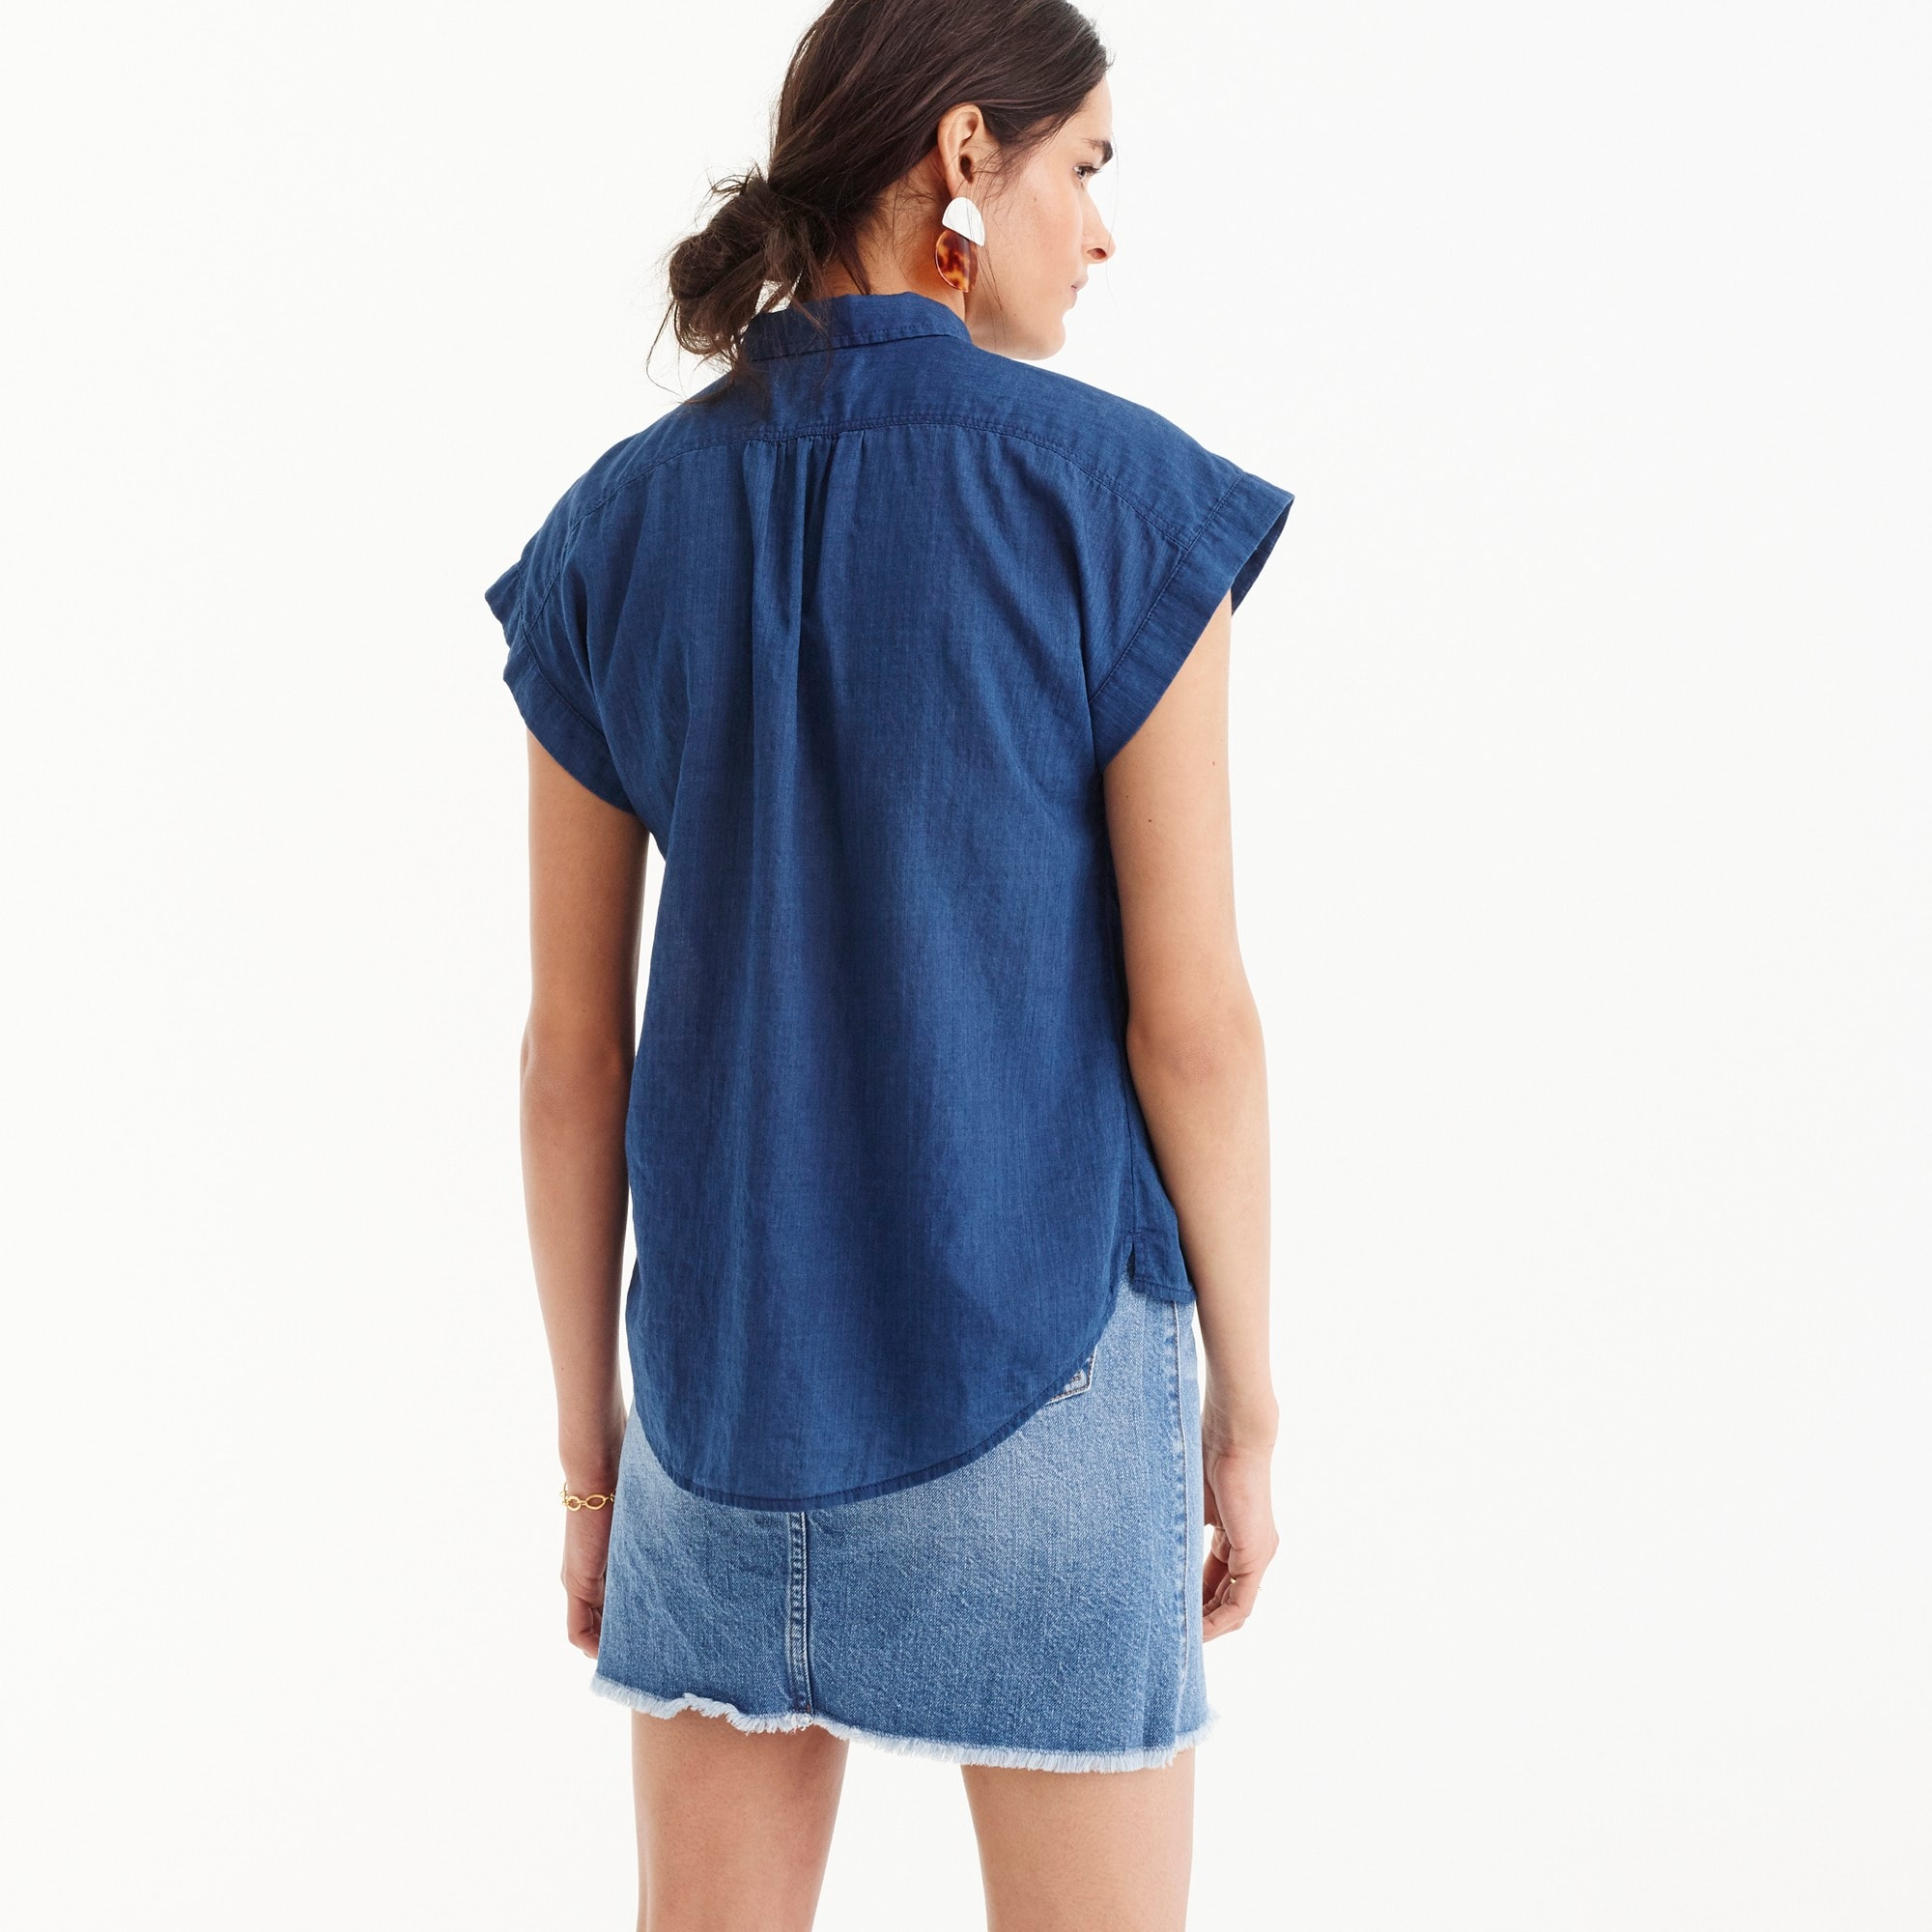 Image 4 for Petite collared popover shirt in indigo gauze